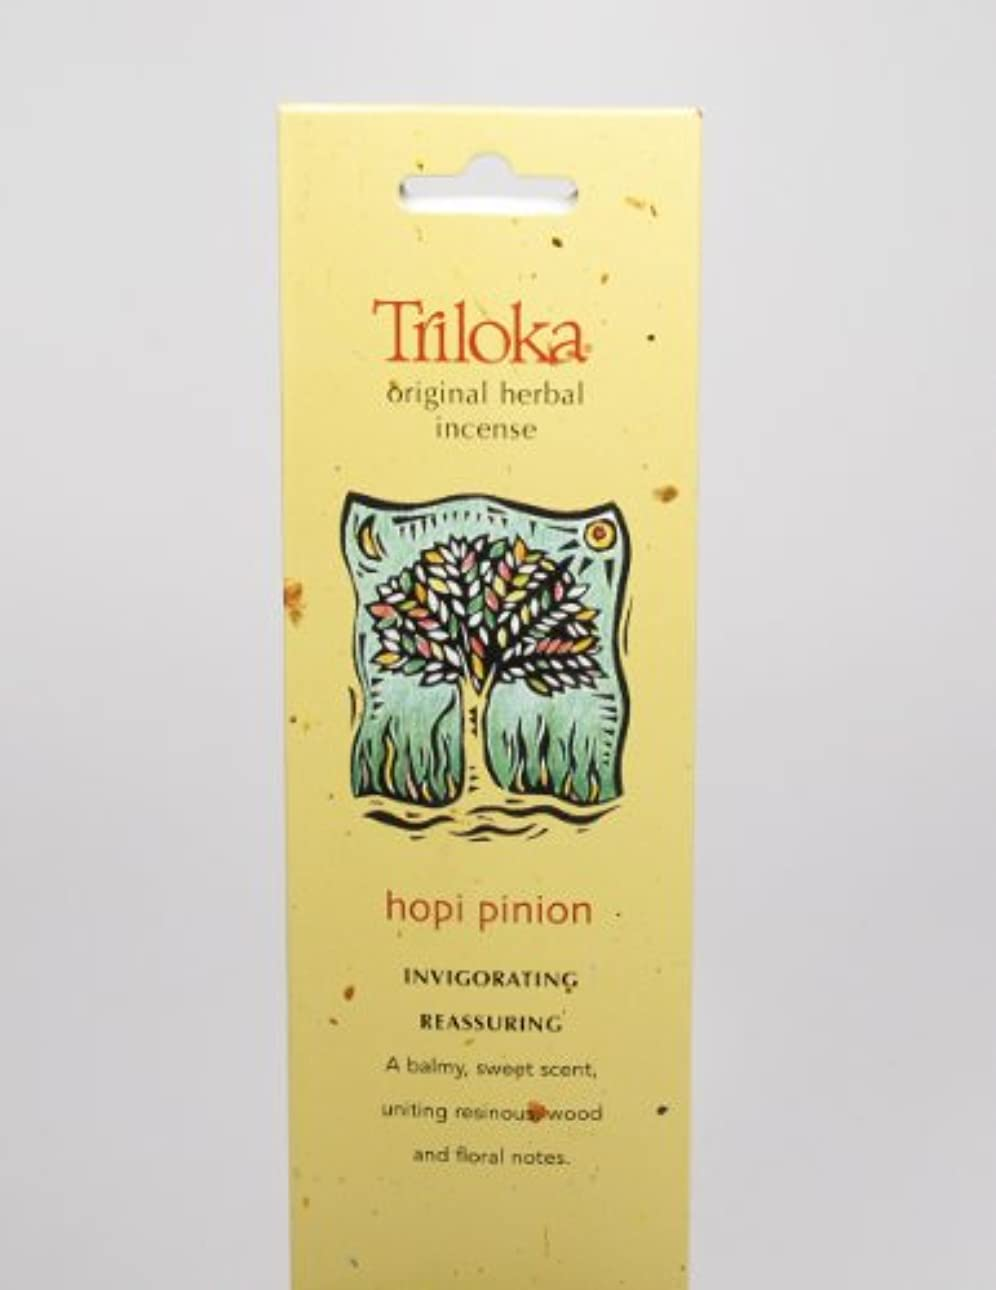 真面目な悪化する紛争Hopi Pinon – Triloka元Herbal Incense Sticks